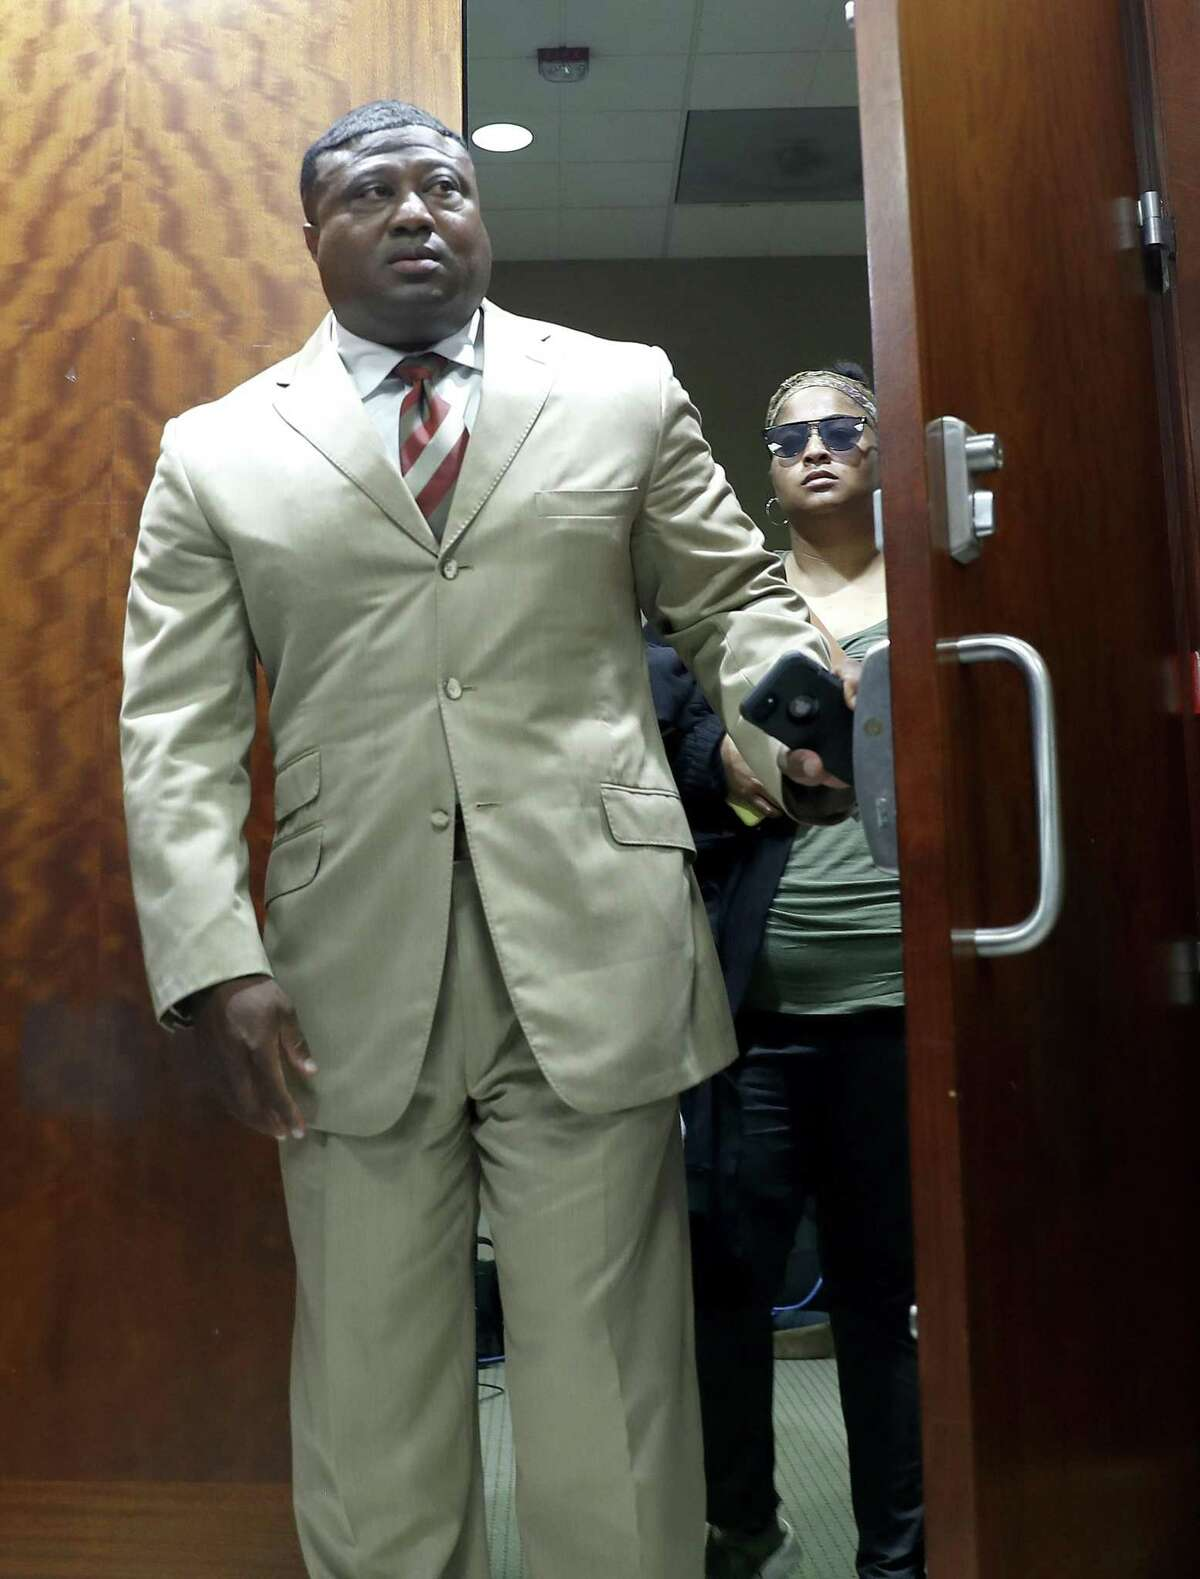 Quanell X walks out of the courtroom with Brittany Bowens, the mother of the missing 4-year-old, Maleah Davis after the court postponed a court appearance for Derion Vence, who is charged with tampering with evidence in the case of Maleah Davis' disappearance, Monday, May 13, 2019, in Houston. >>> Click through for a timeline of the case